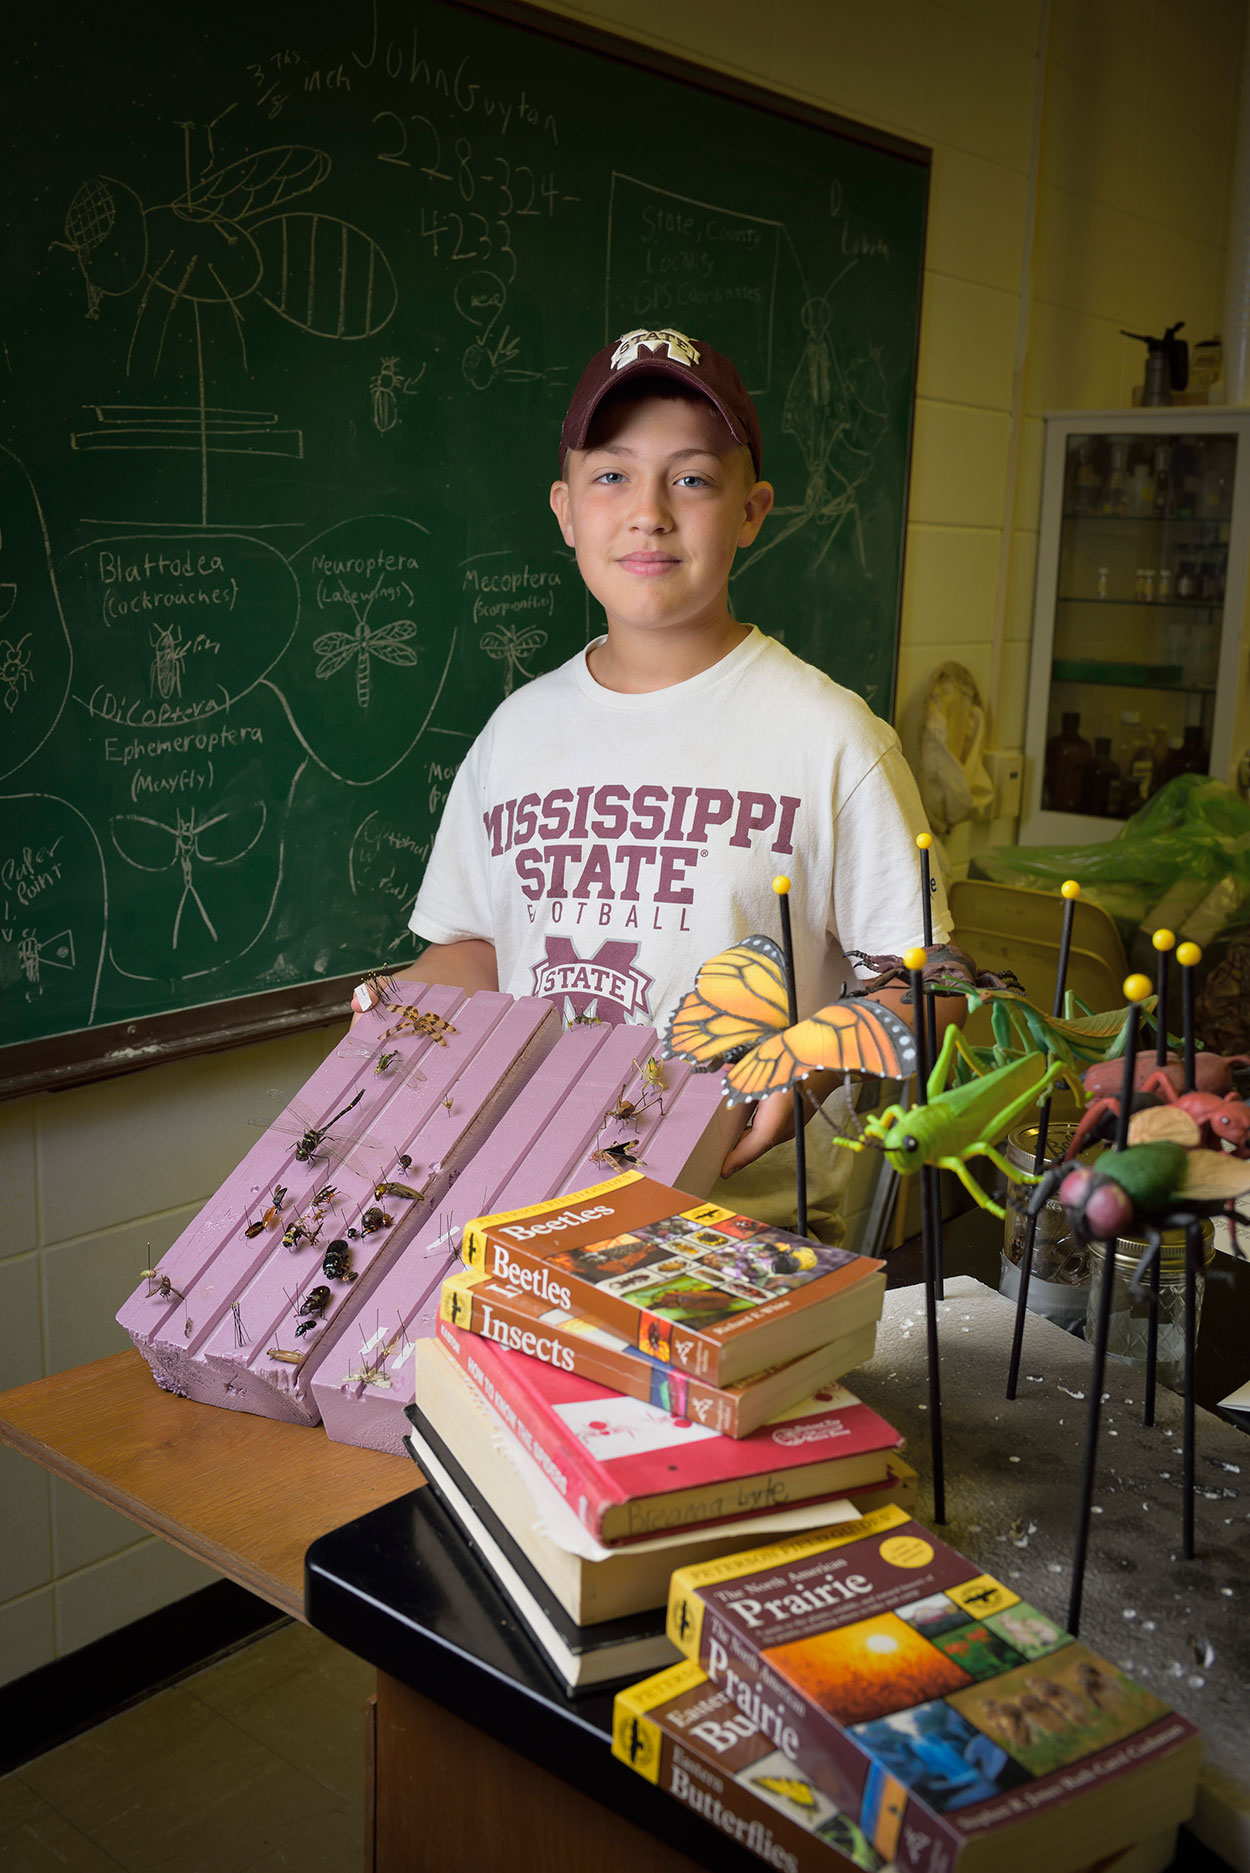 A young boy wearing a Mississippi State hat and t-shirt stands behind a stack of books and insect replicas while he holds his project, a purple piece of wood that showcases many different types of insects.